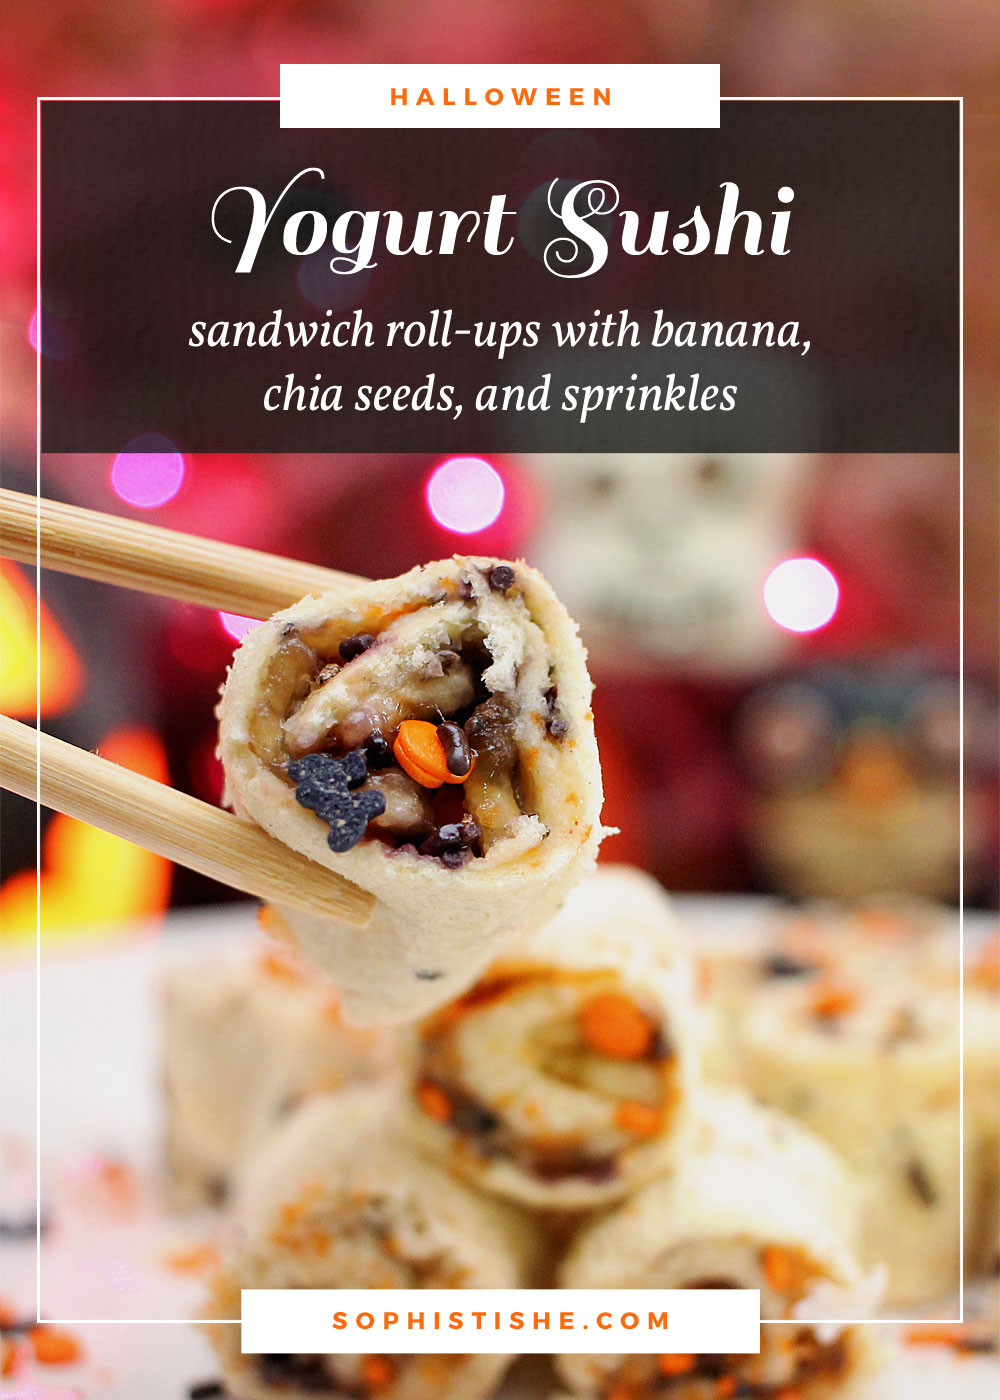 Yogurt Sushi Sandwich Roll-ups